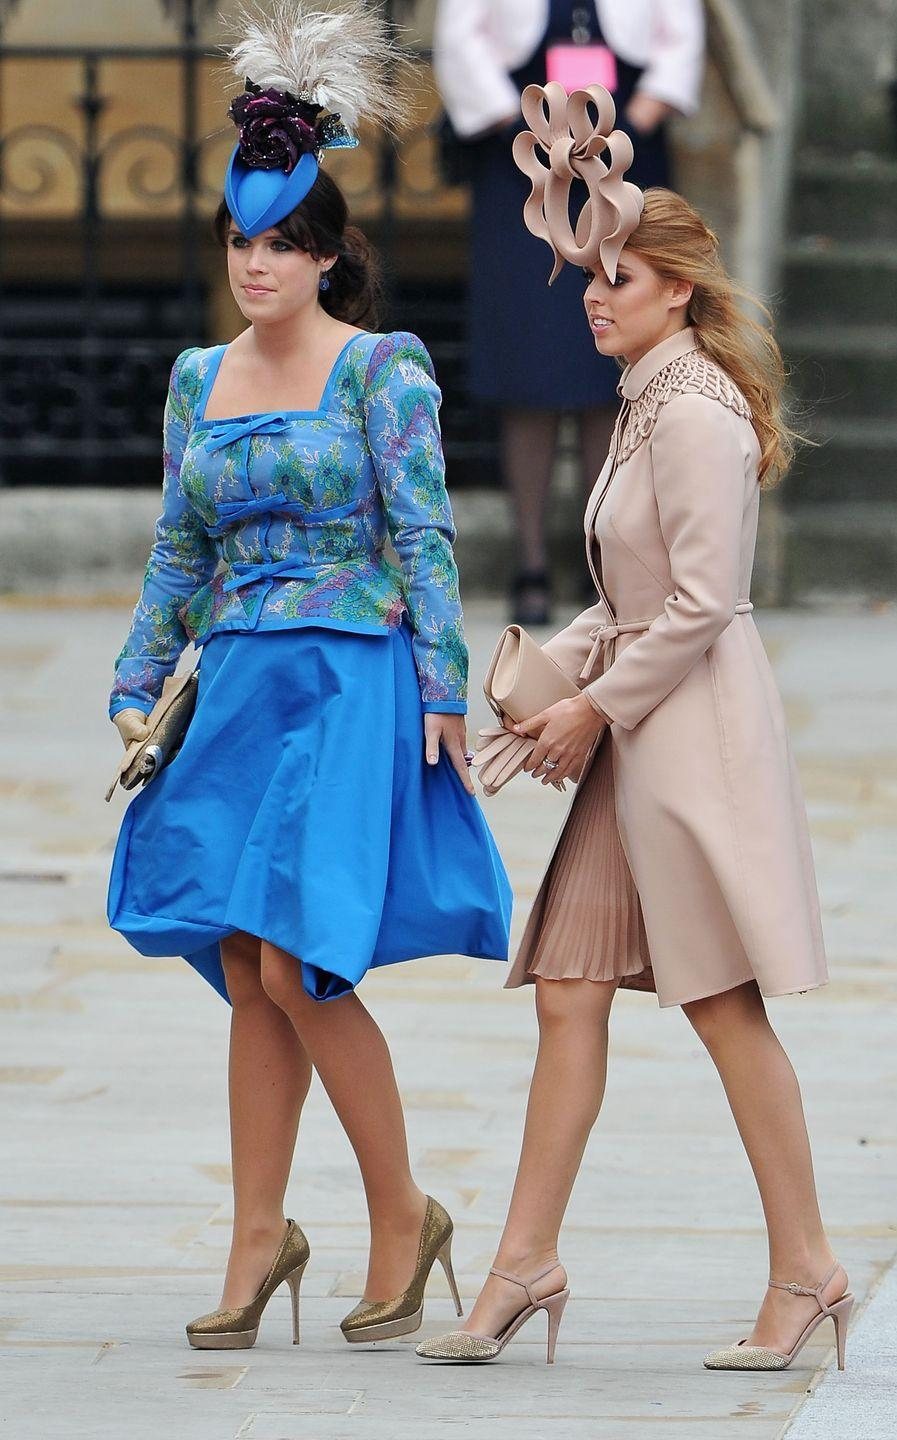 "<p>When sisters Princess Eugenie and Princess Beatrice arrived at Prince William and Kate's 2011 wedding, <a href=""https://www.townandcountrymag.com/style/fashion-trends/g15896831/princess-beatrice-best-hats/"" rel=""nofollow noopener"" target=""_blank"" data-ylk=""slk:it was a hat moment heard 'round the world."" class=""link rapid-noclick-resp"">it was a hat moment heard 'round the world.</a><br></p>"